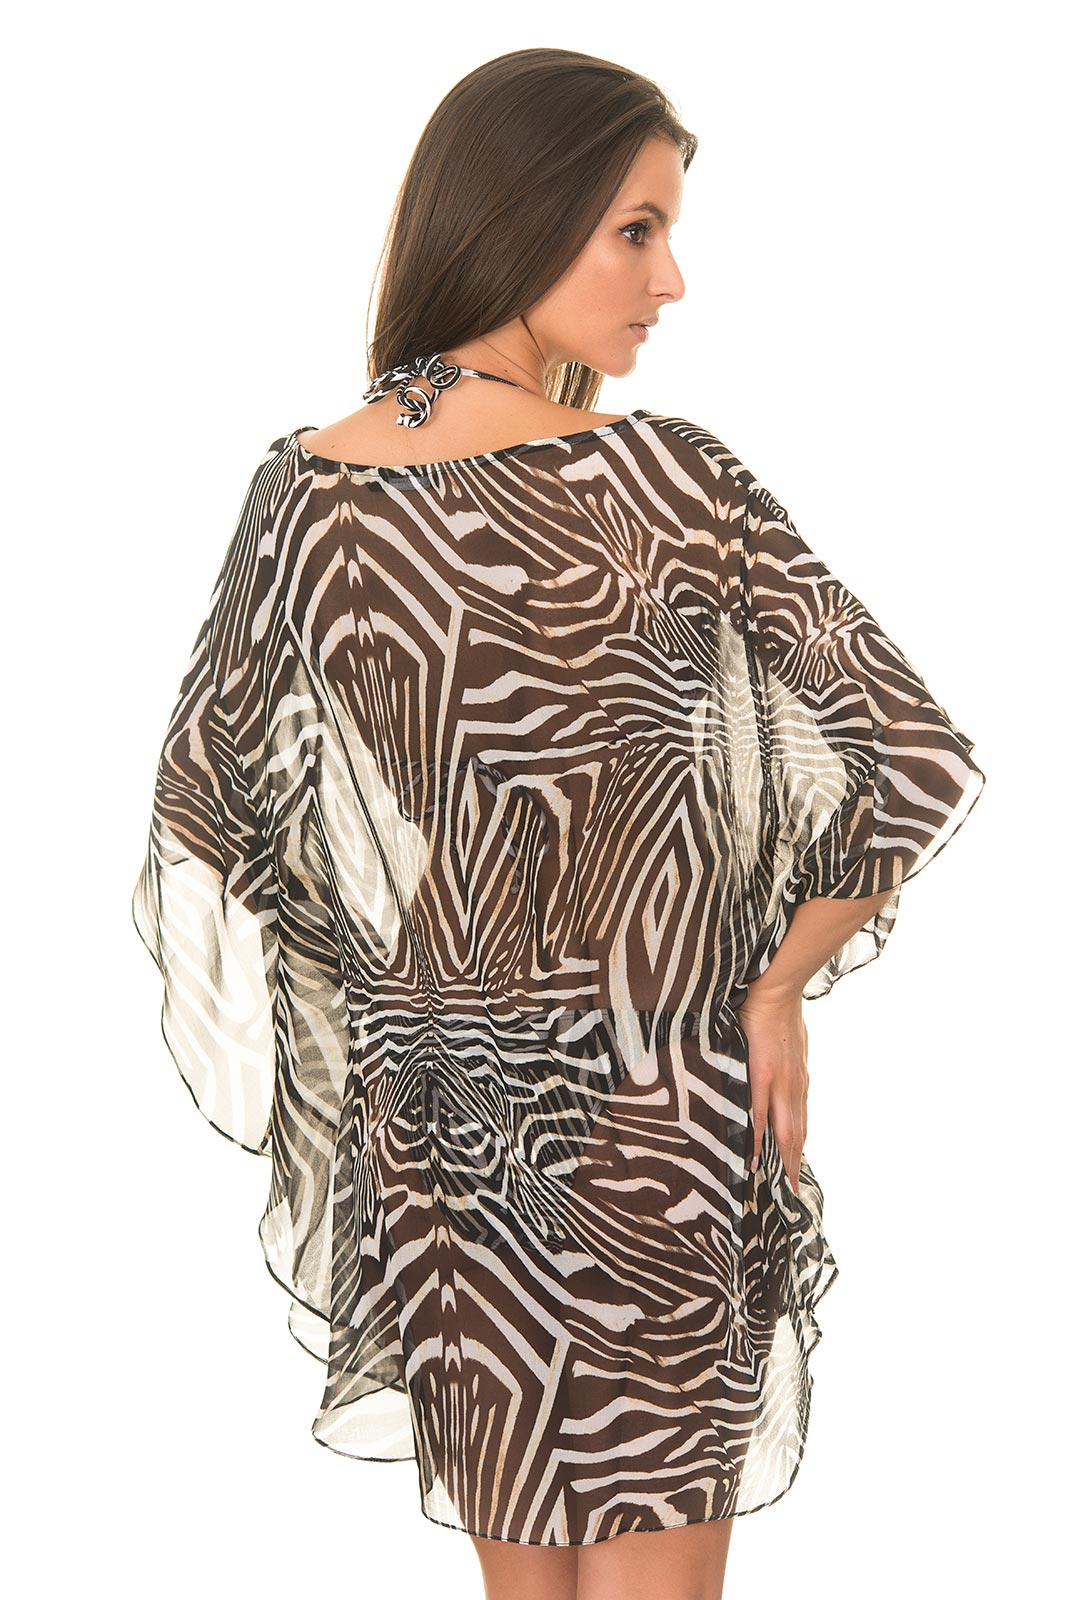 lenny niemeyer strandkleidung kaftan ju zebra. Black Bedroom Furniture Sets. Home Design Ideas